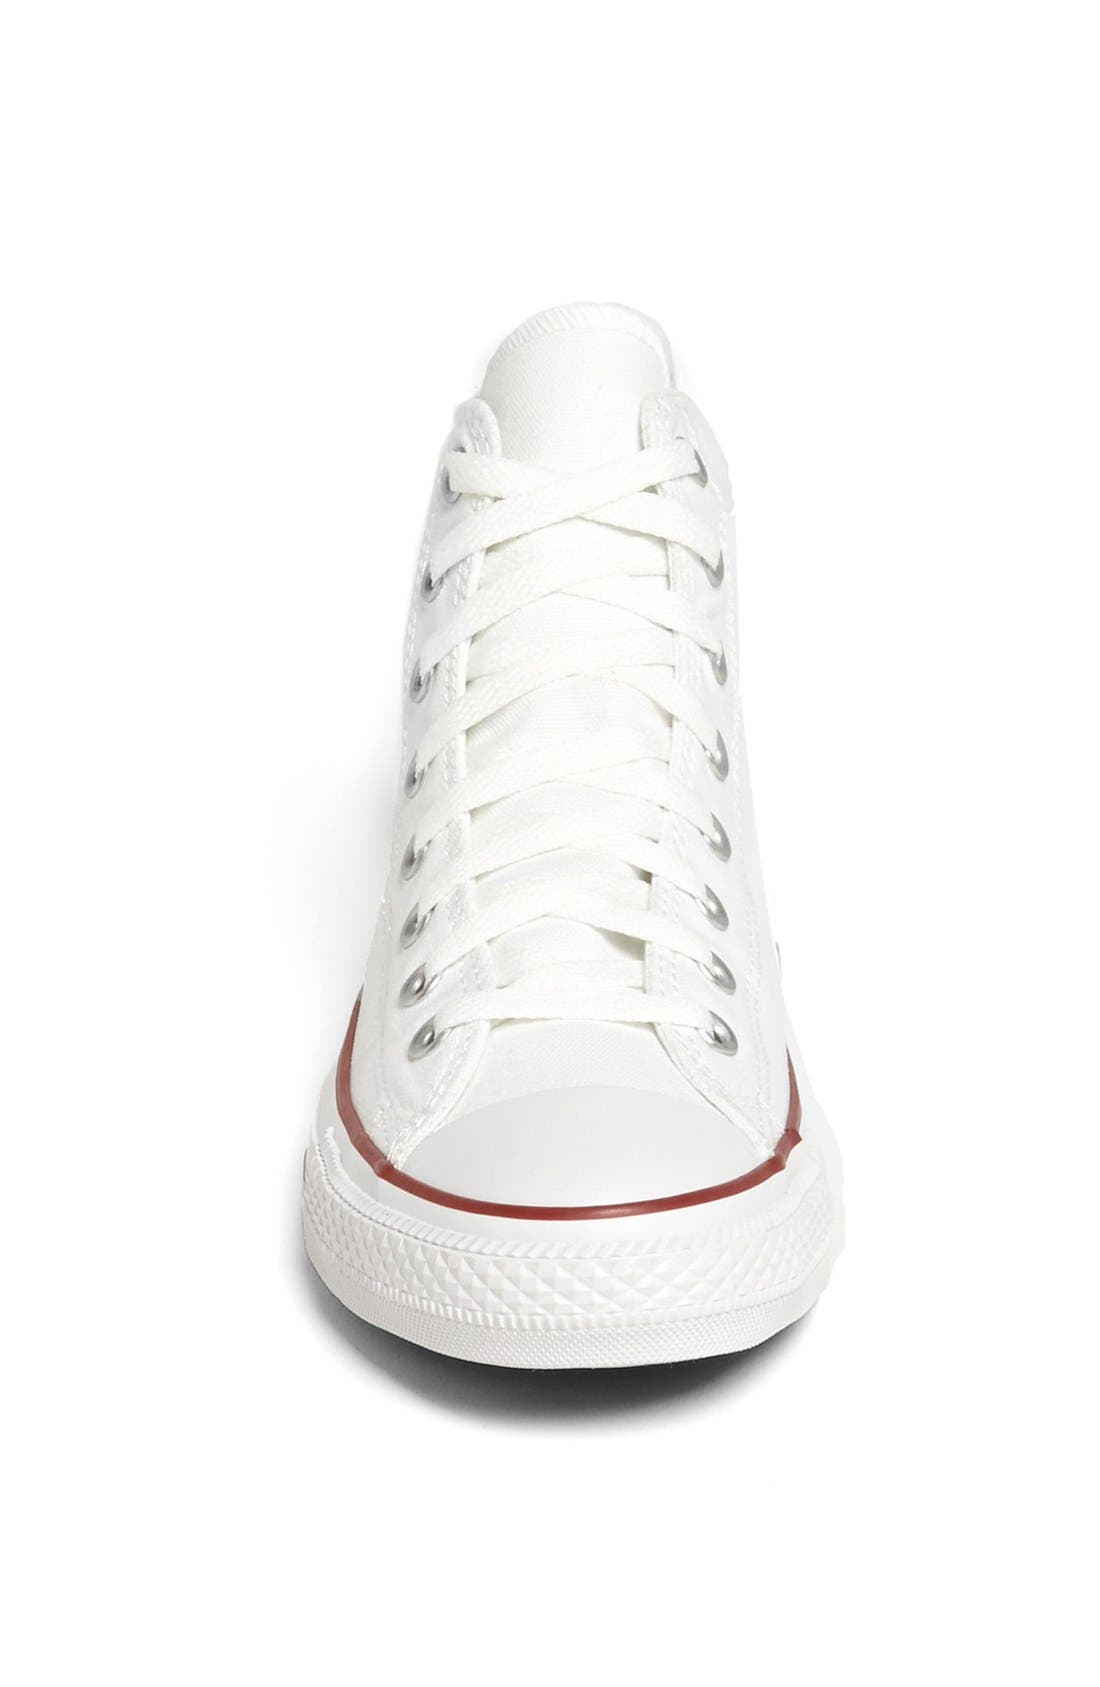 CONVERSE, Chuck Taylor<sup>®</sup> High Top Sneaker, Alternate thumbnail 4, color, OPTIC WHITE